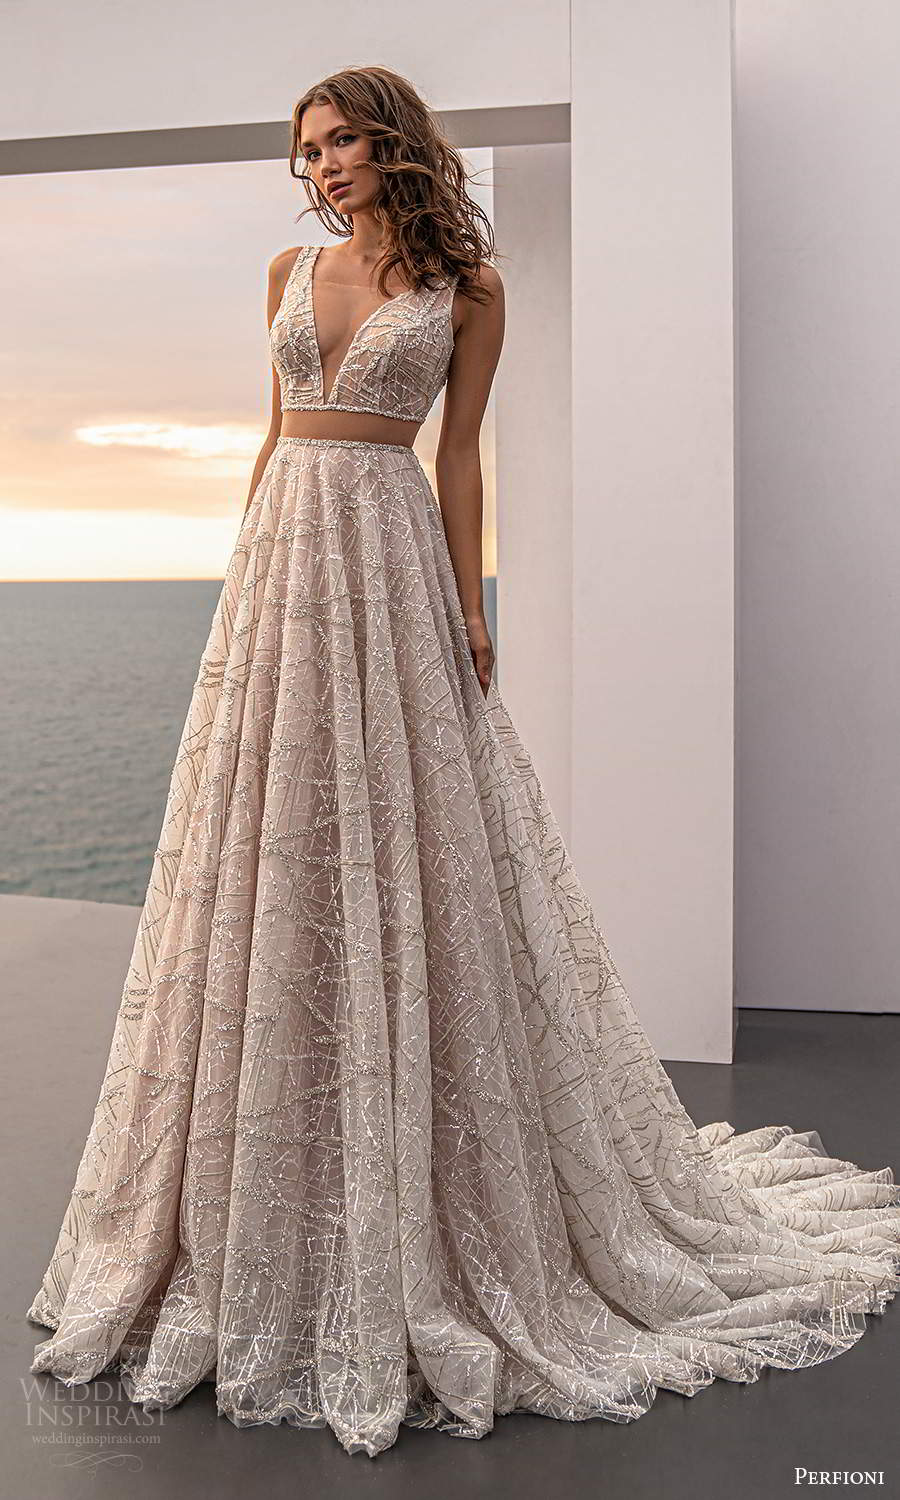 perfioni 2021 bridal sleeveless straps plunging v neckline fully embellished a line ball gown wedding dress chapel train (5) mv